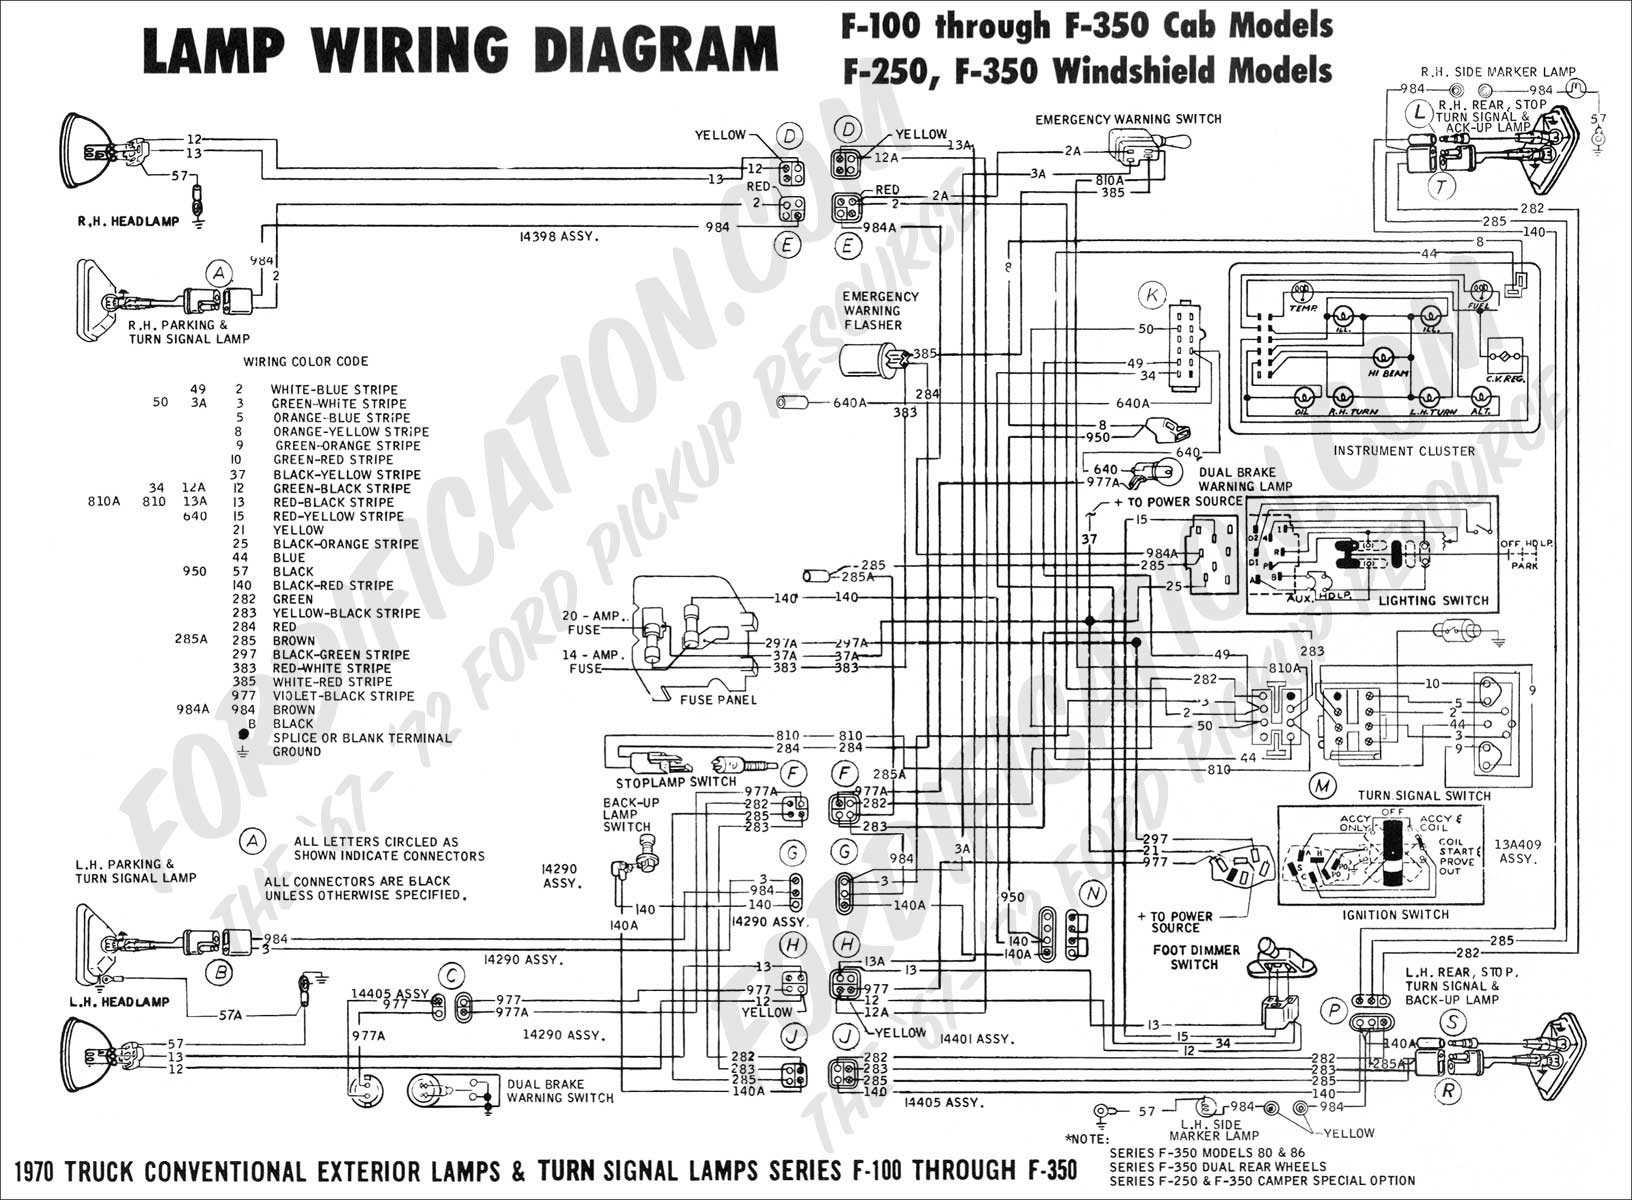 2003 ford Windstar Wiring Diagram Headlamp Wiring Diagram 1999 ford F350 Wiring Data Of 2003 ford Windstar Wiring Diagram 1998 ford F150 4 2 V6 Fuse Box Diagram ford Wiring Diagrams